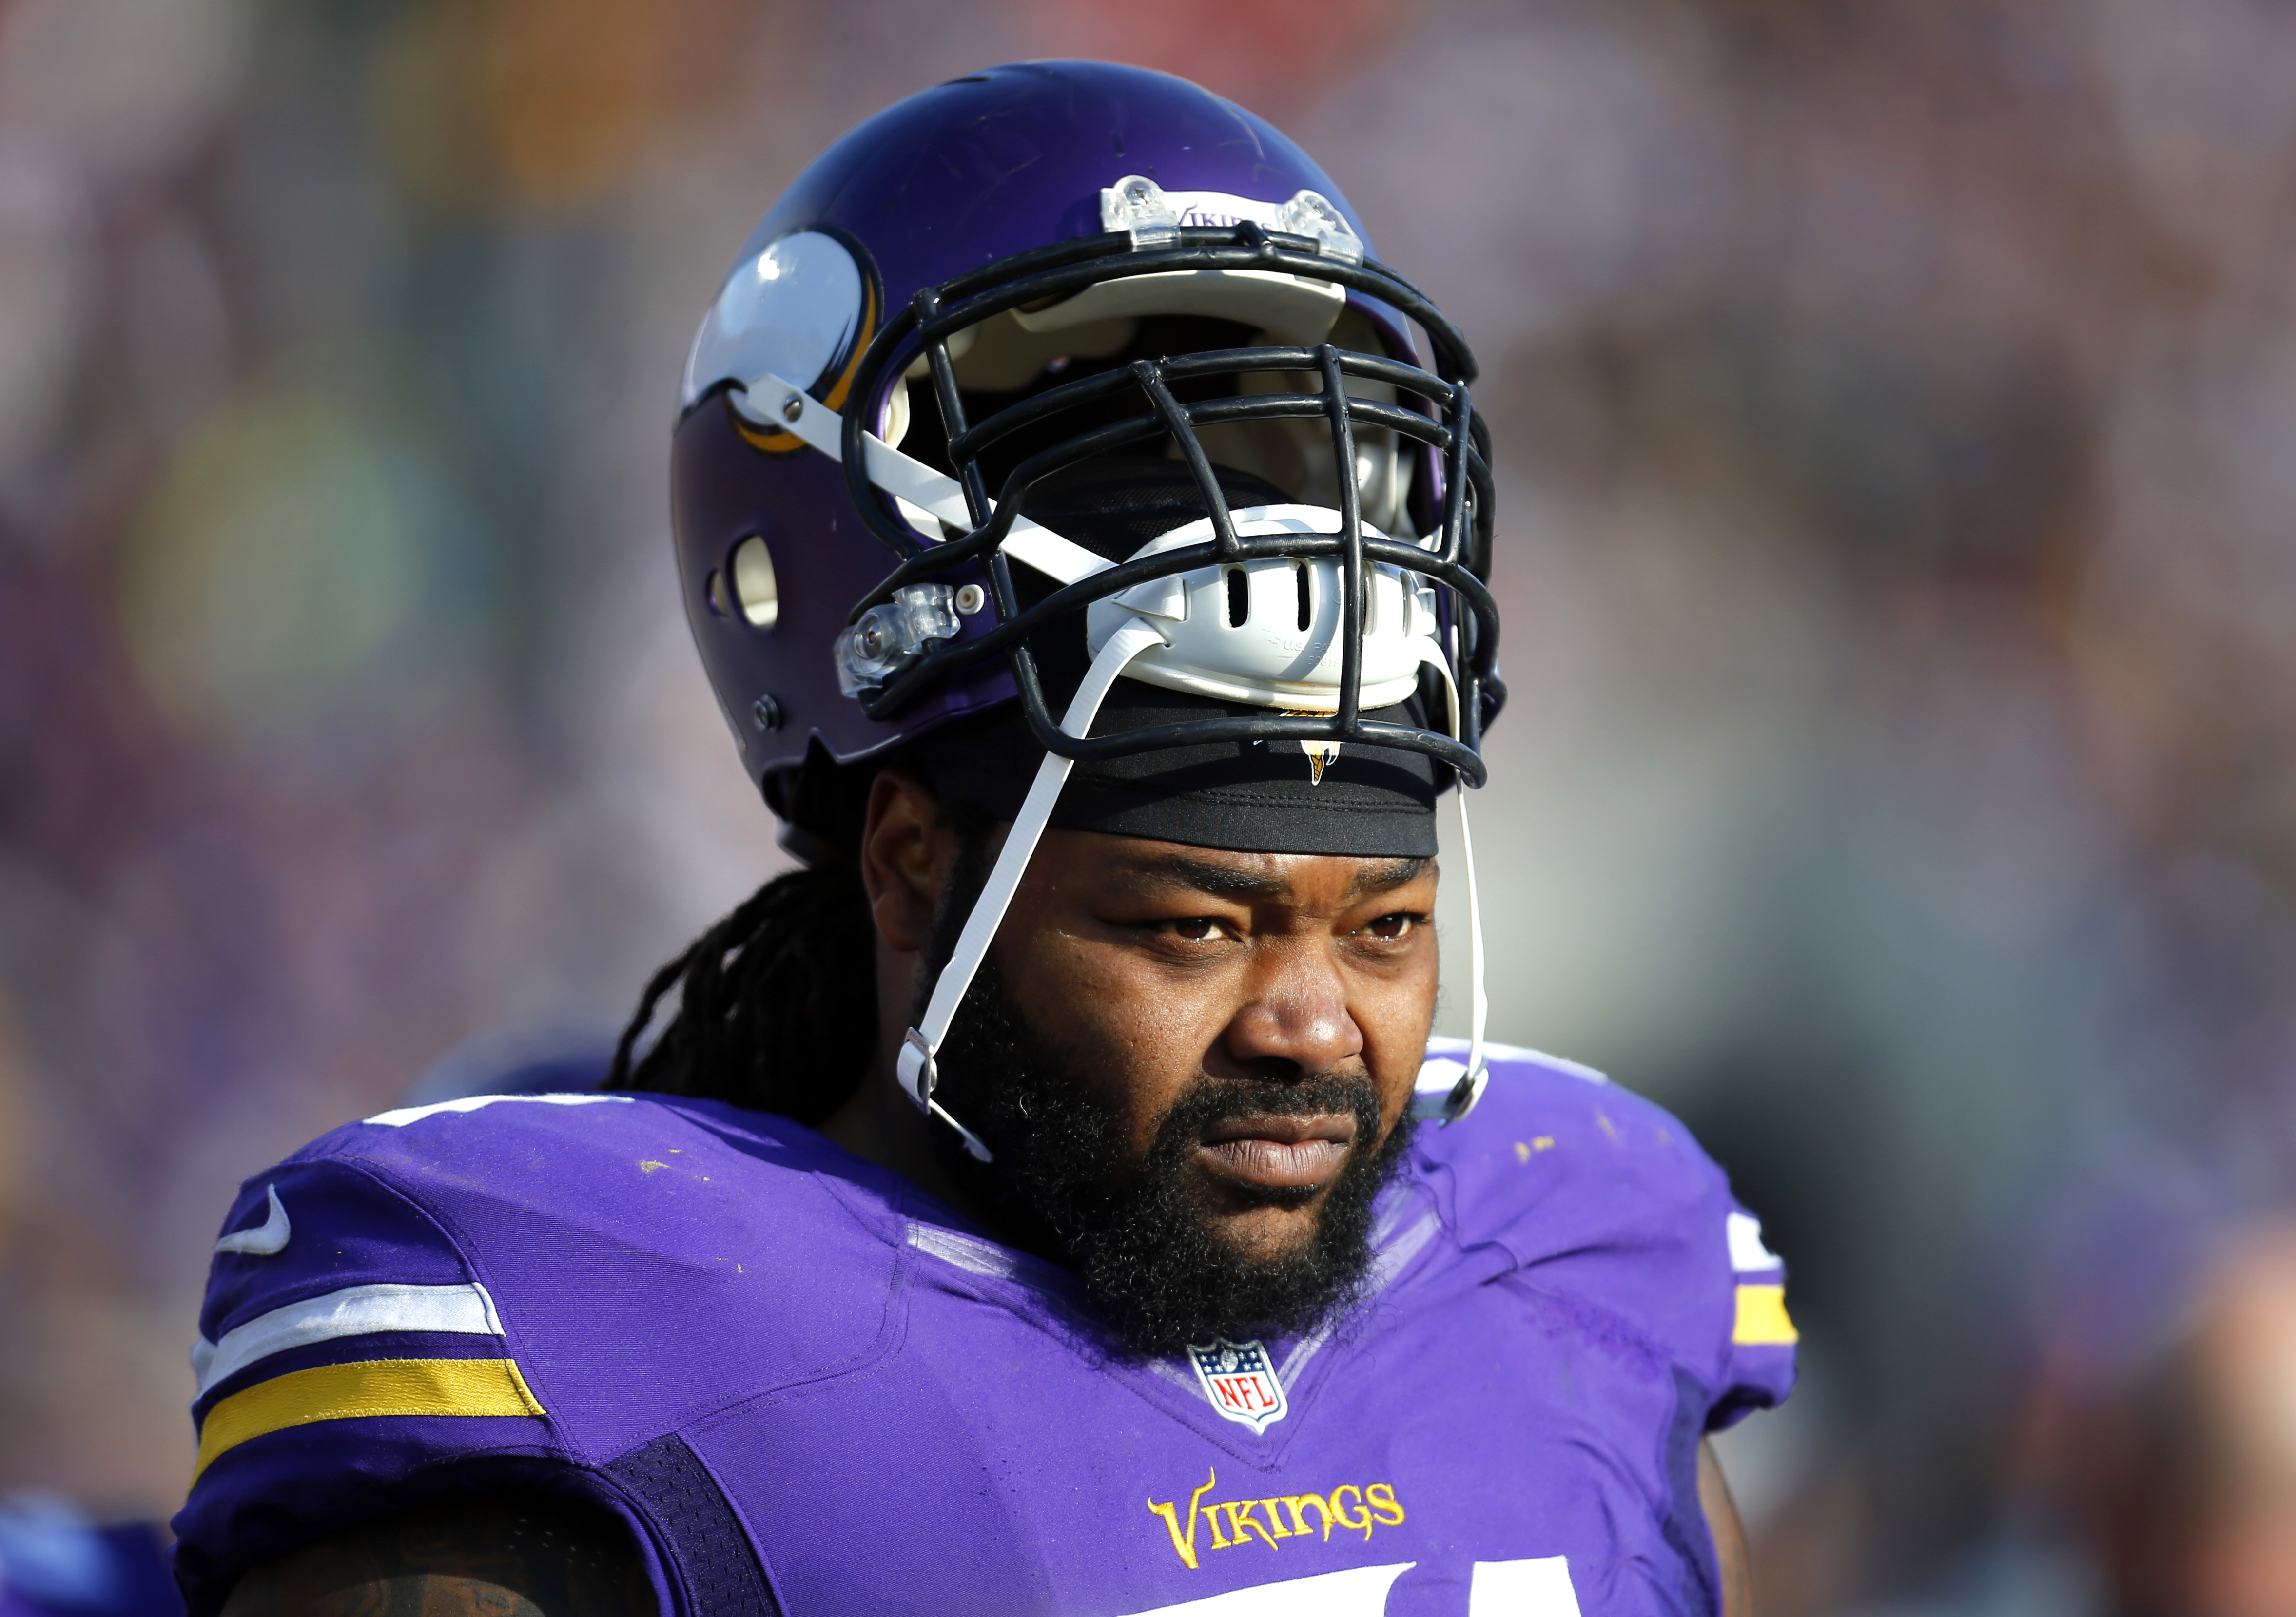 Veteran right tackle Phil Loadholt expected to retire